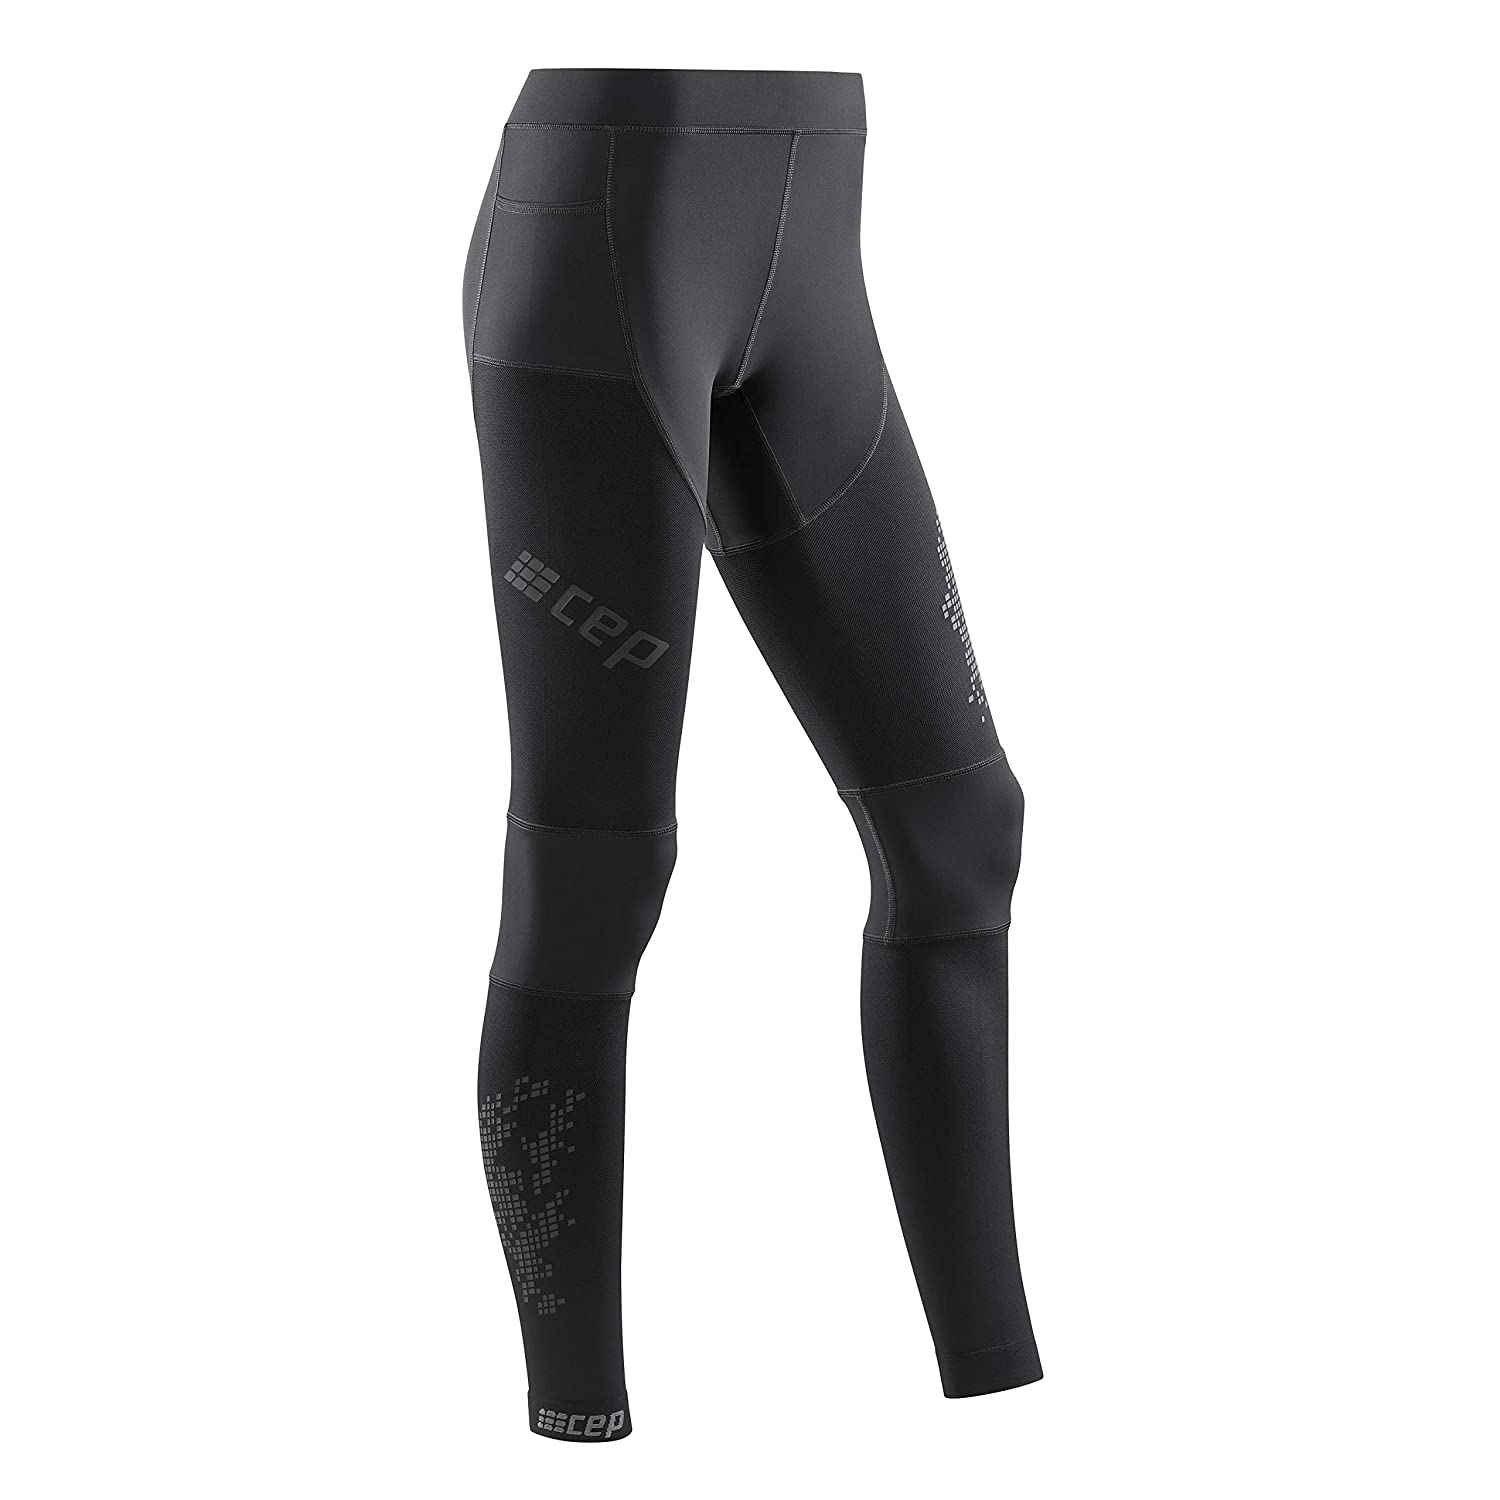 CEP - Run Tights 3.0 Laufhose in schwarz für Damen, extrem funktionale und Bequeme Sportleggins, Made by medi